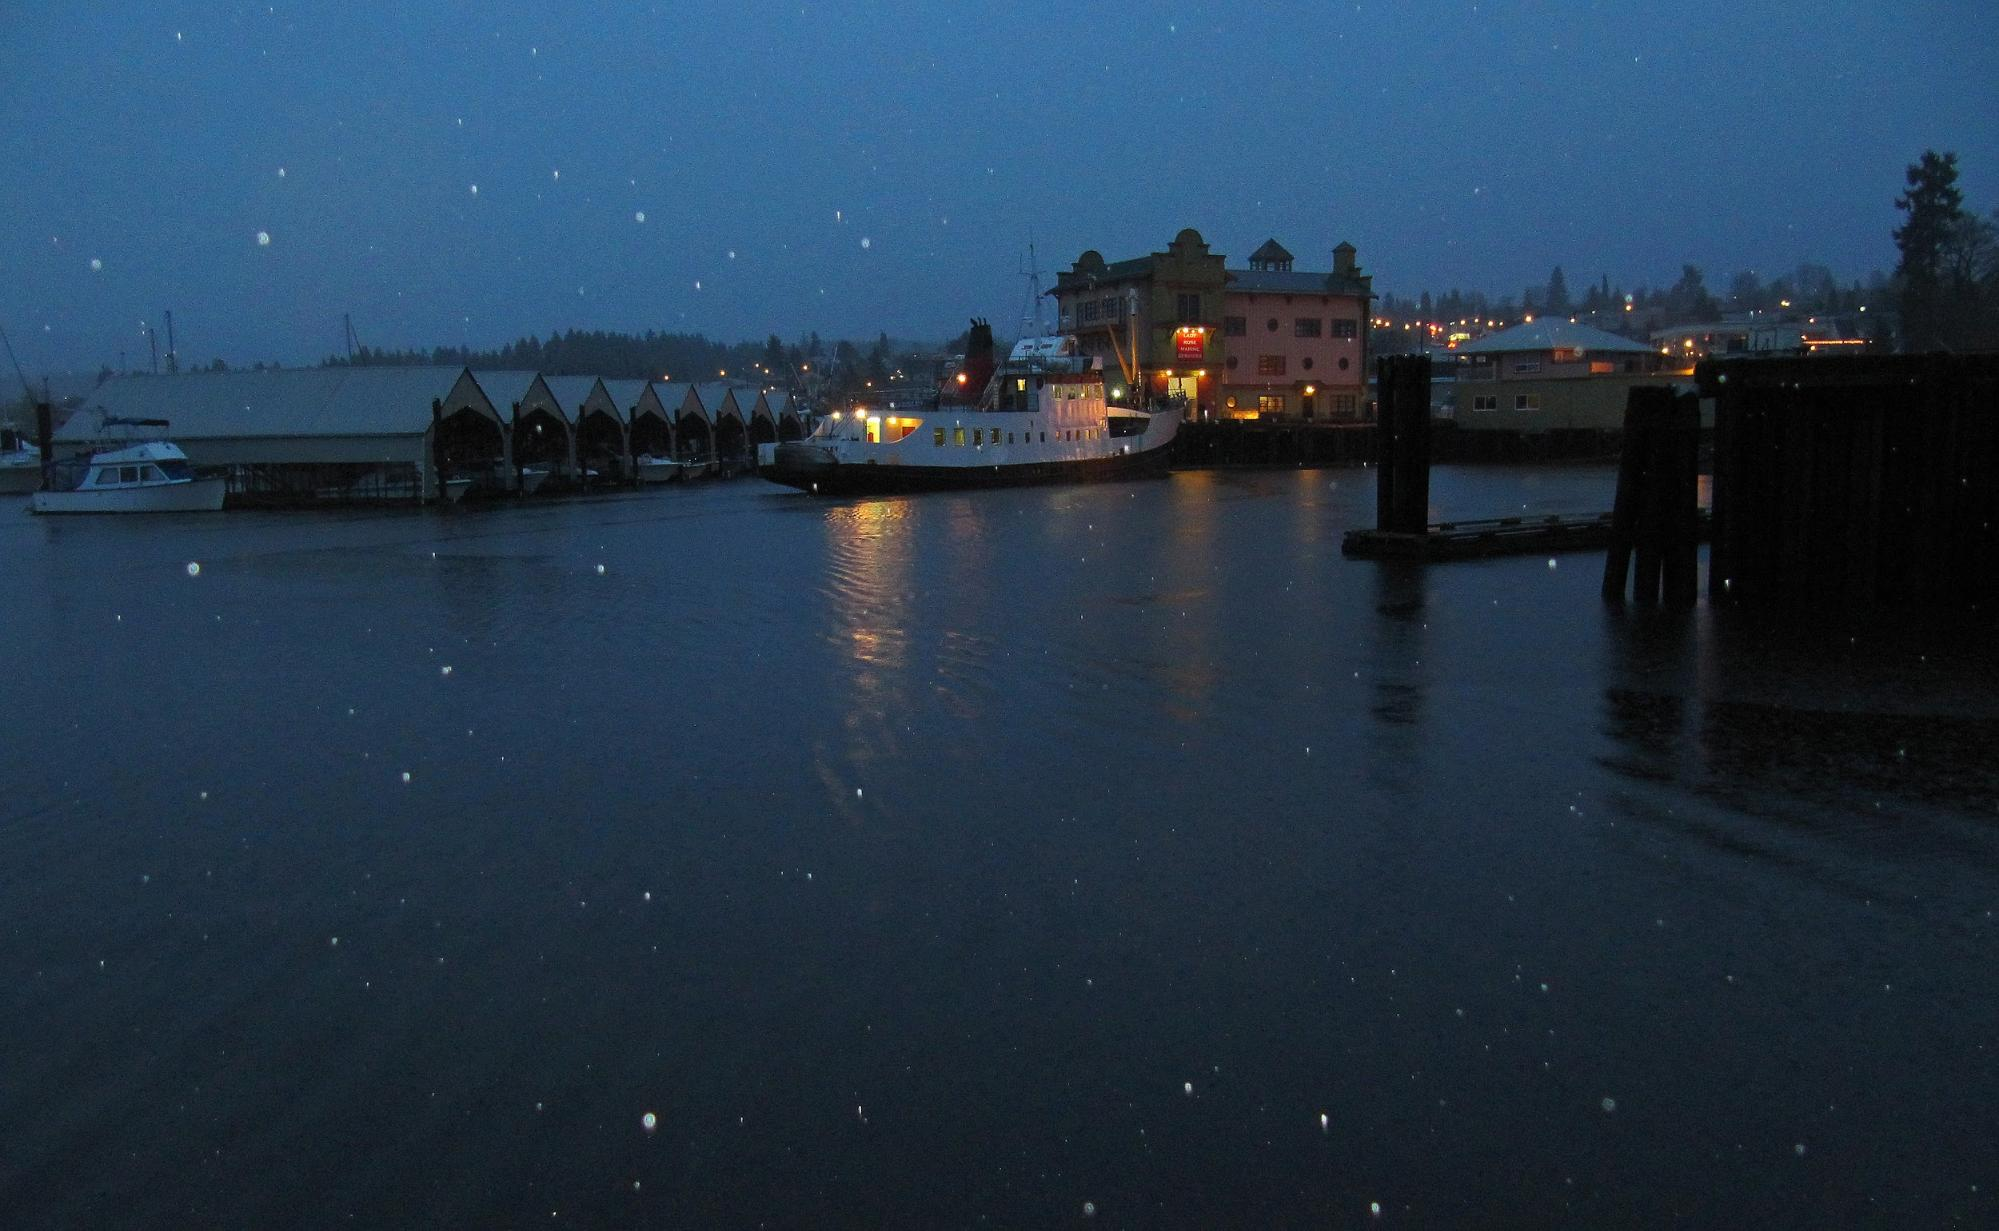 Snow softly falls over a quiet harbour at night.